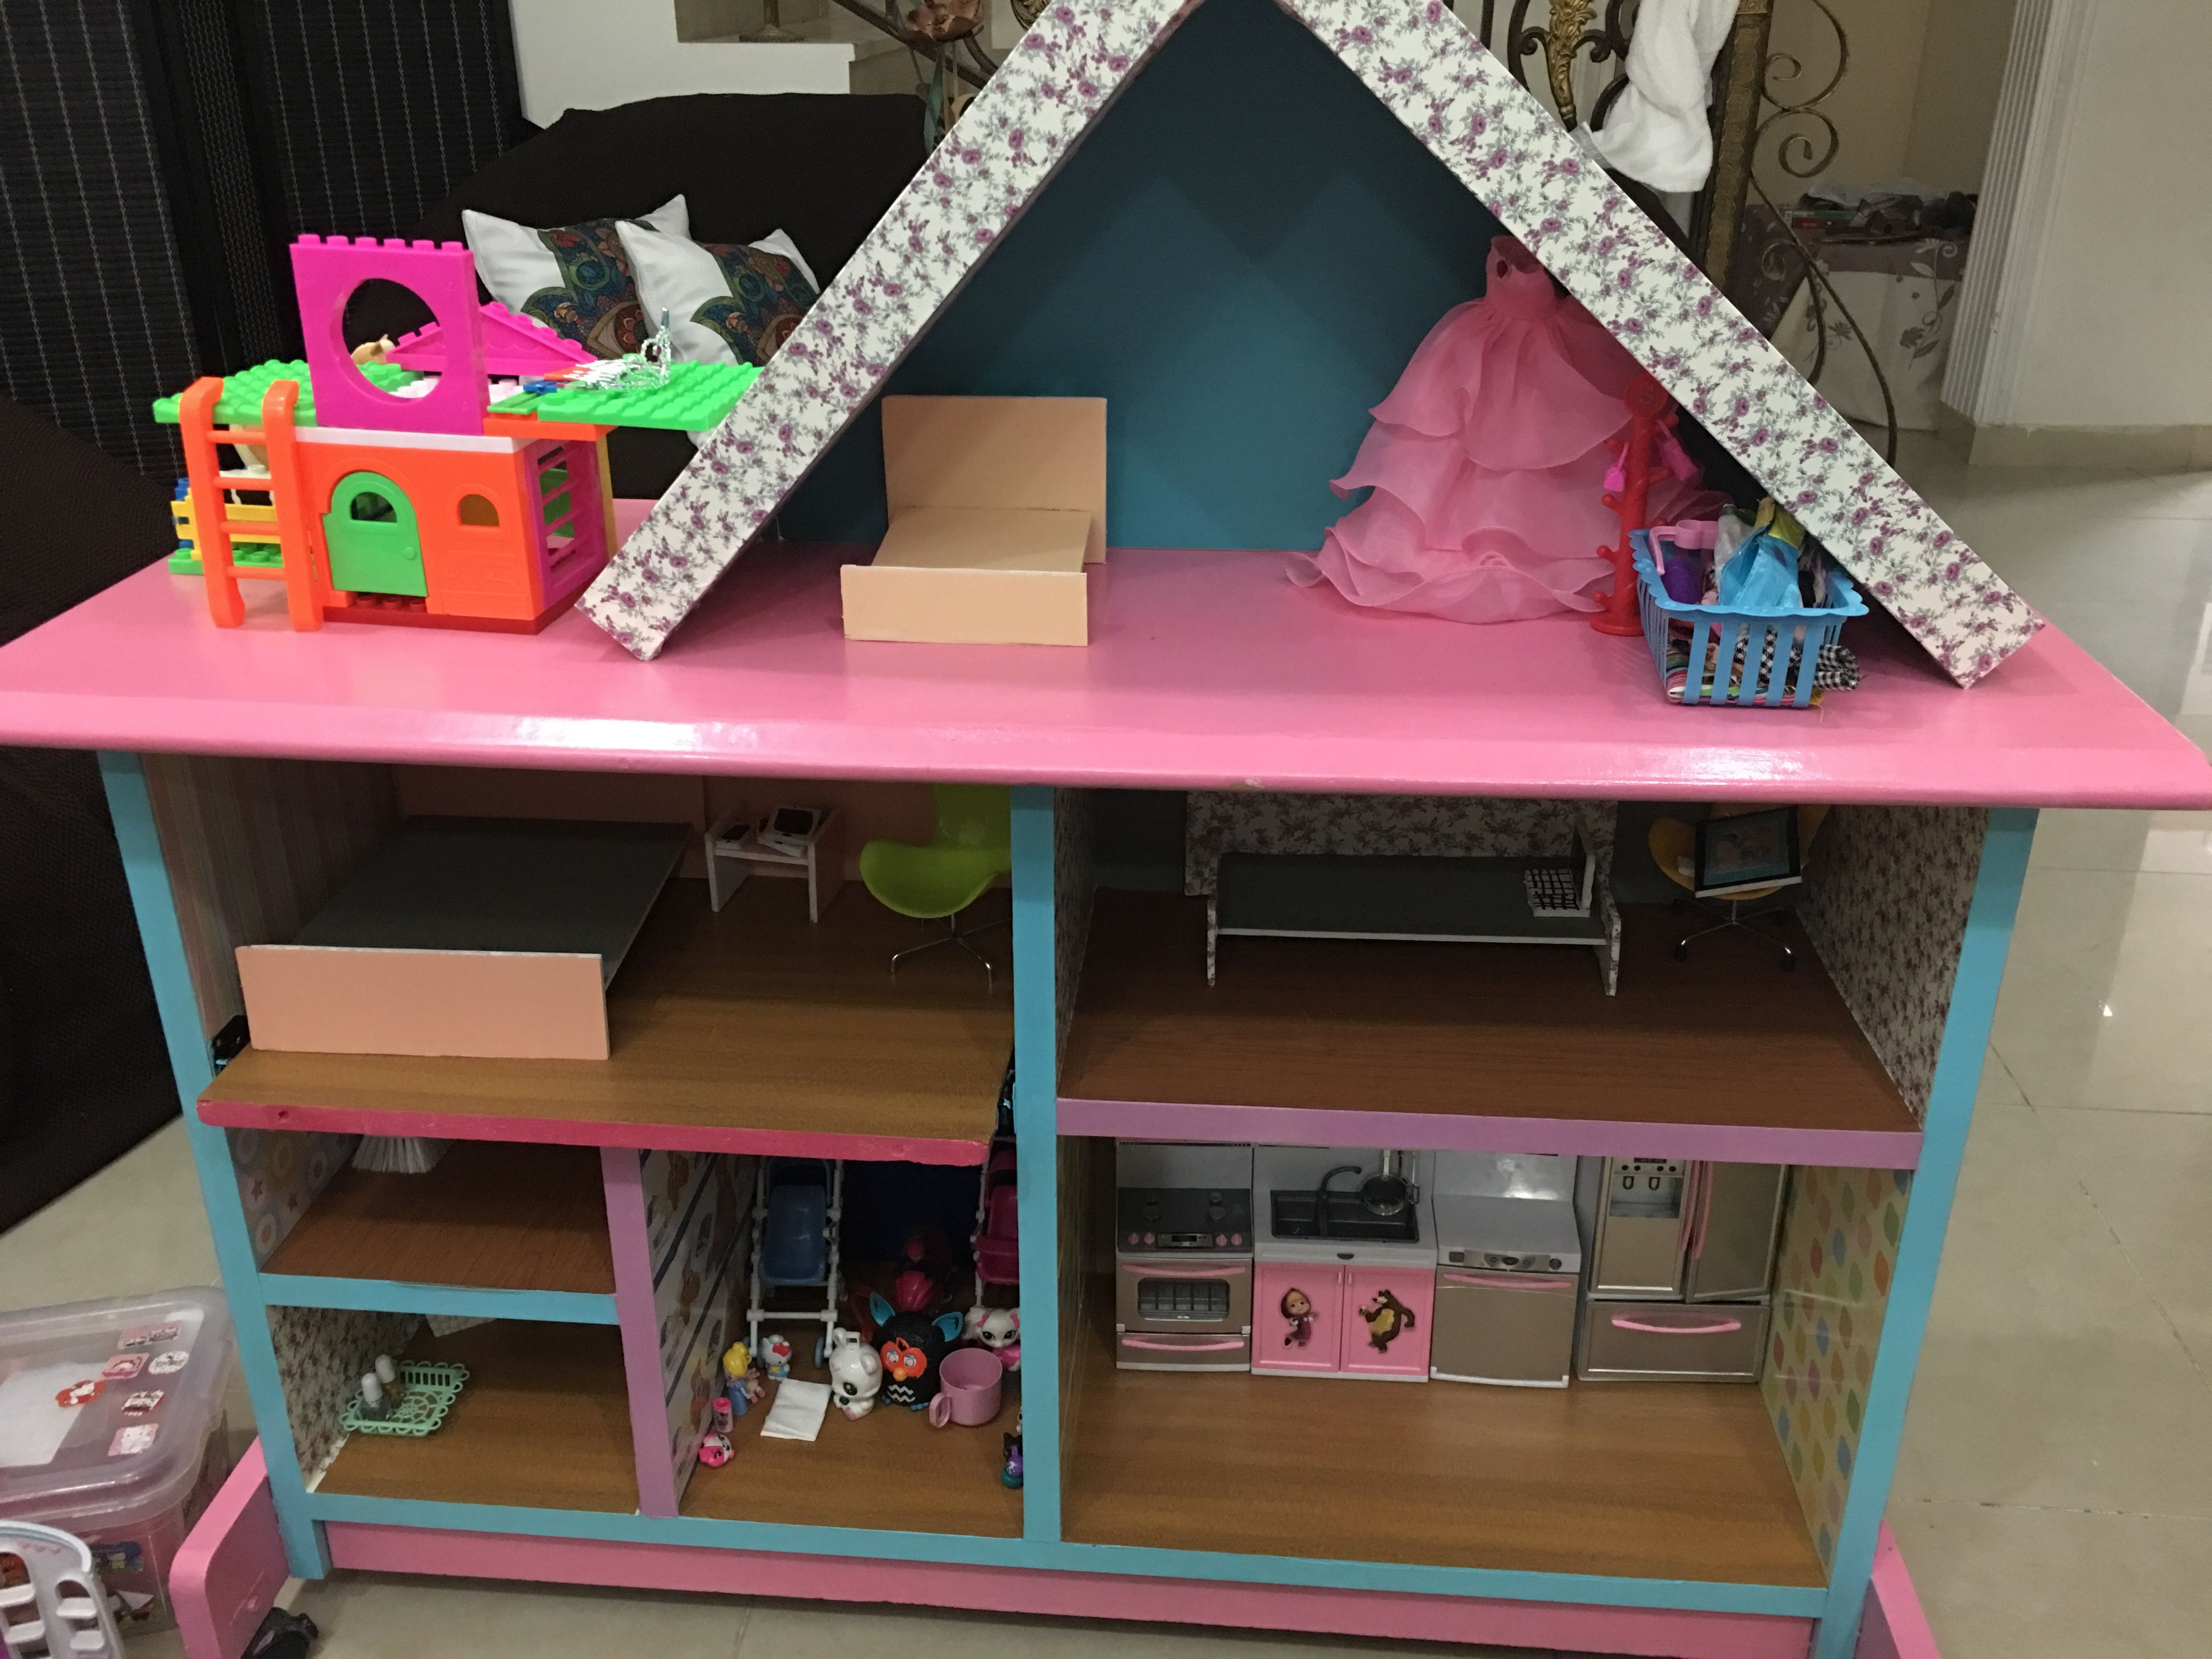 Pin By Dhabia Wageih On Barbie Dream House From Computer Table Barbie Dream House Barbie Dream Toddler Bed